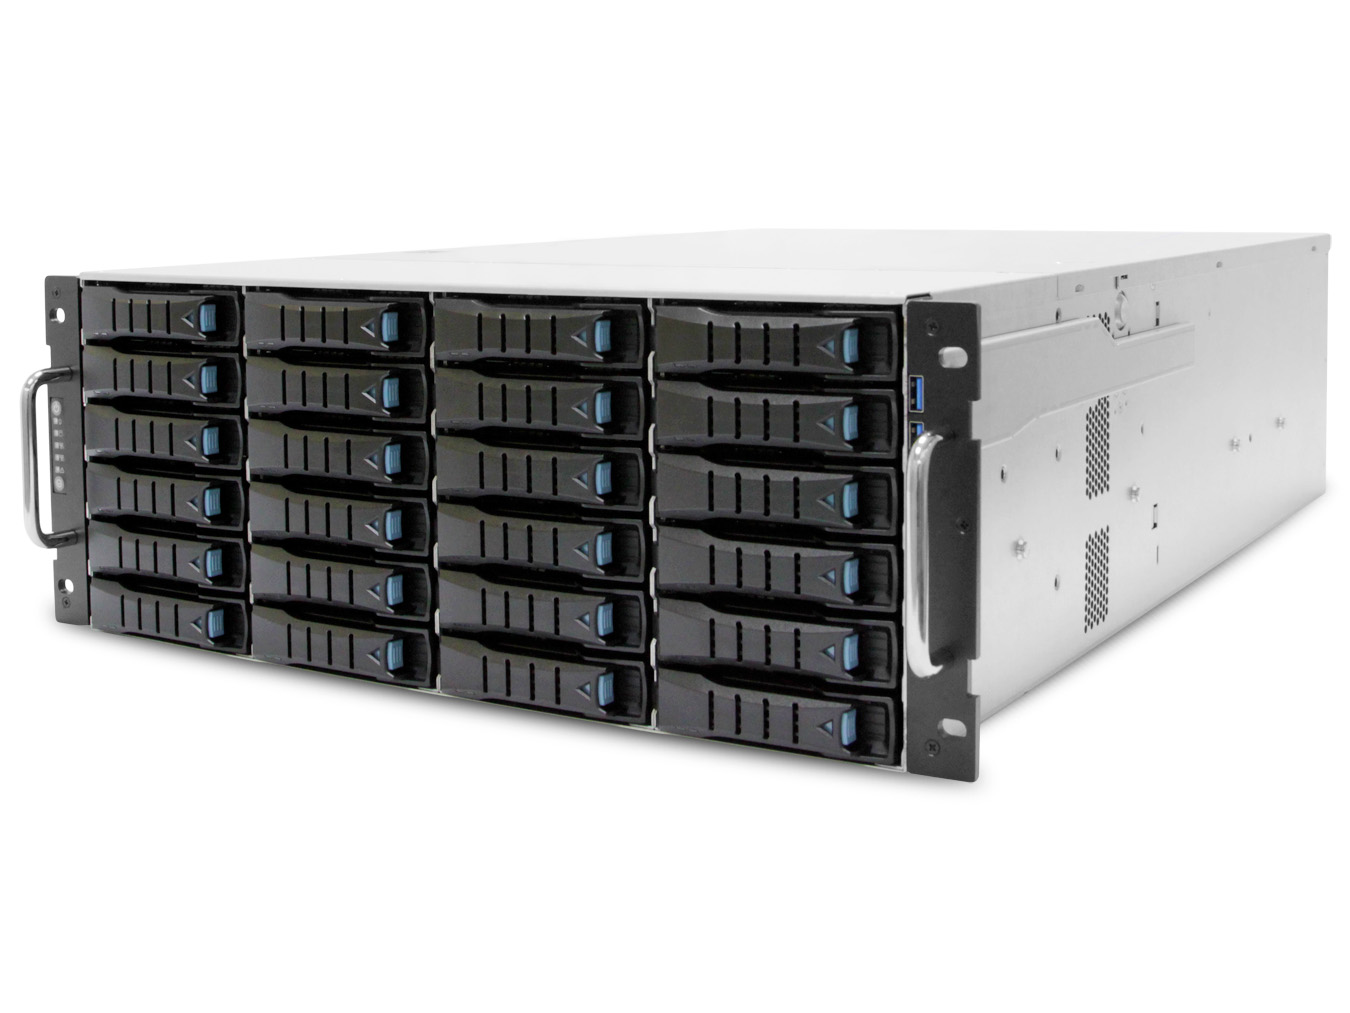 AIC SB402-VG XP1-S402VG01 4U 36-Bay Storage Server